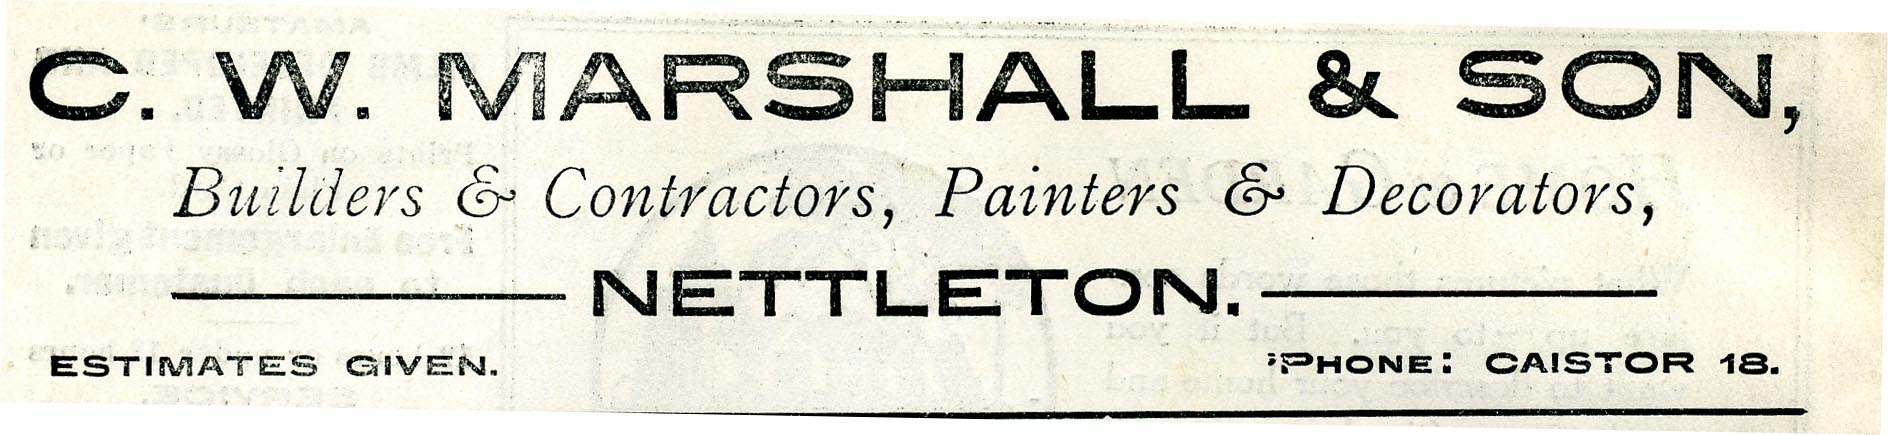 Advert 1933 Marshall.jpg